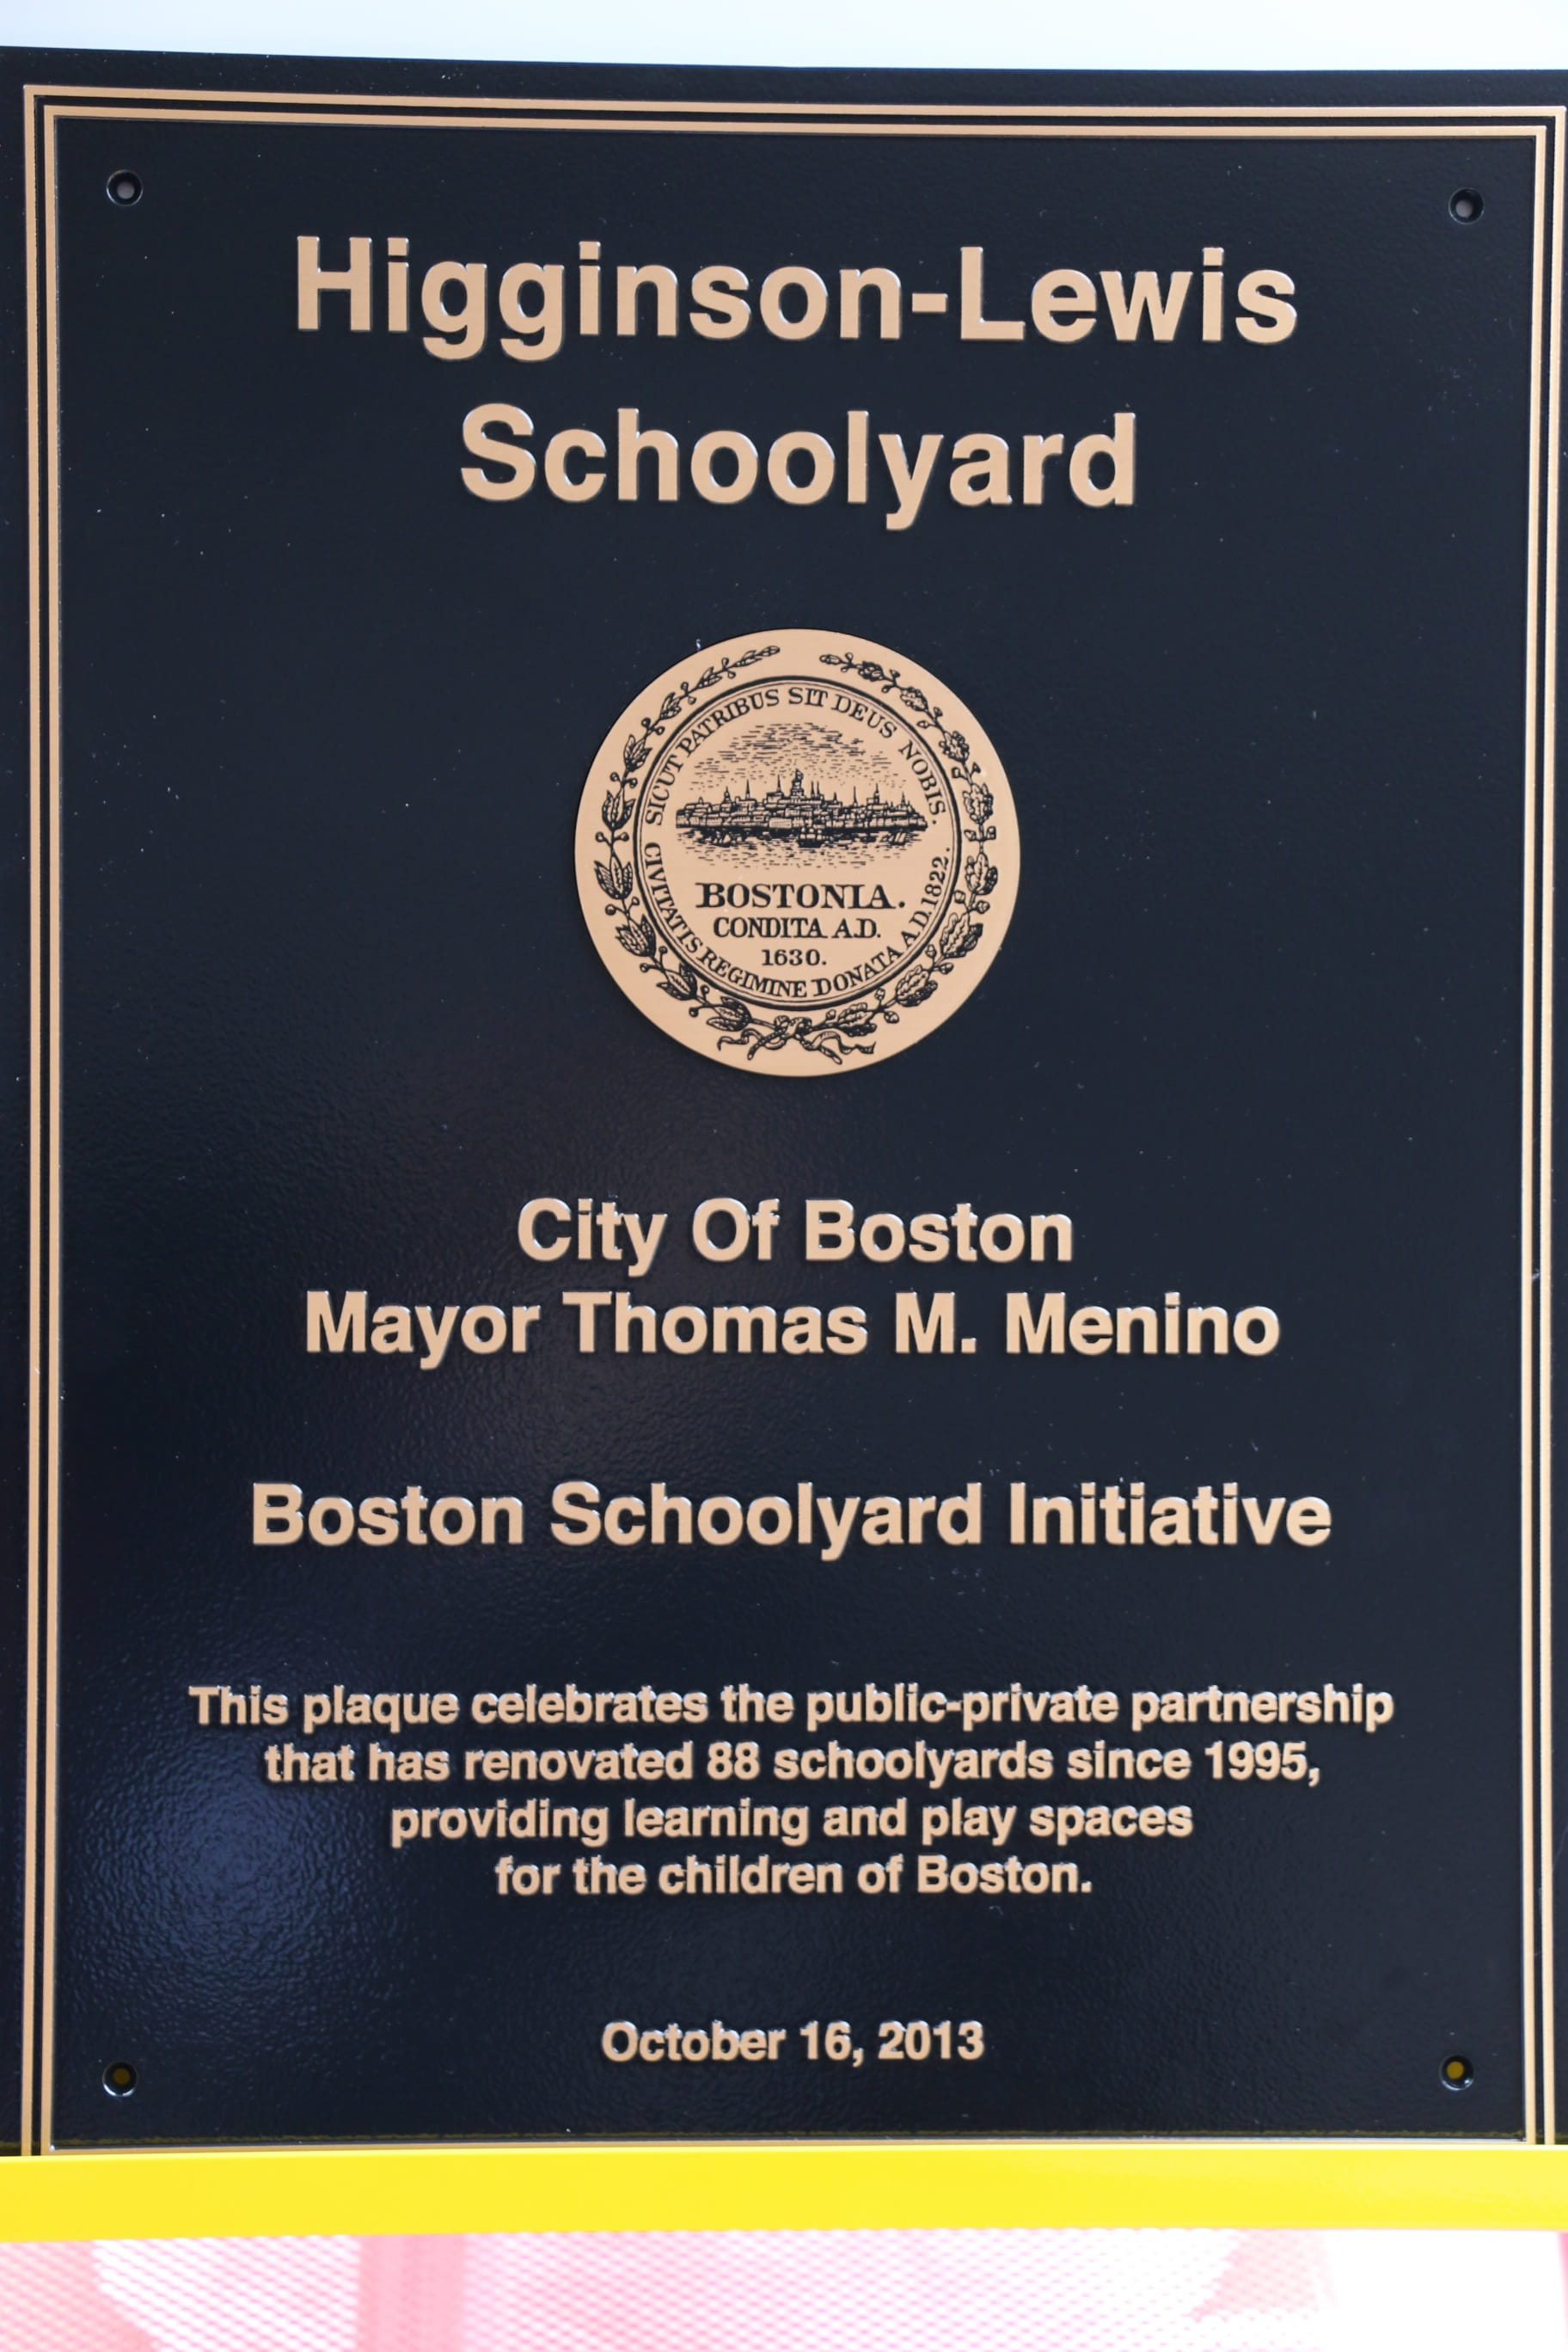 Schoolyard Initiative plaque